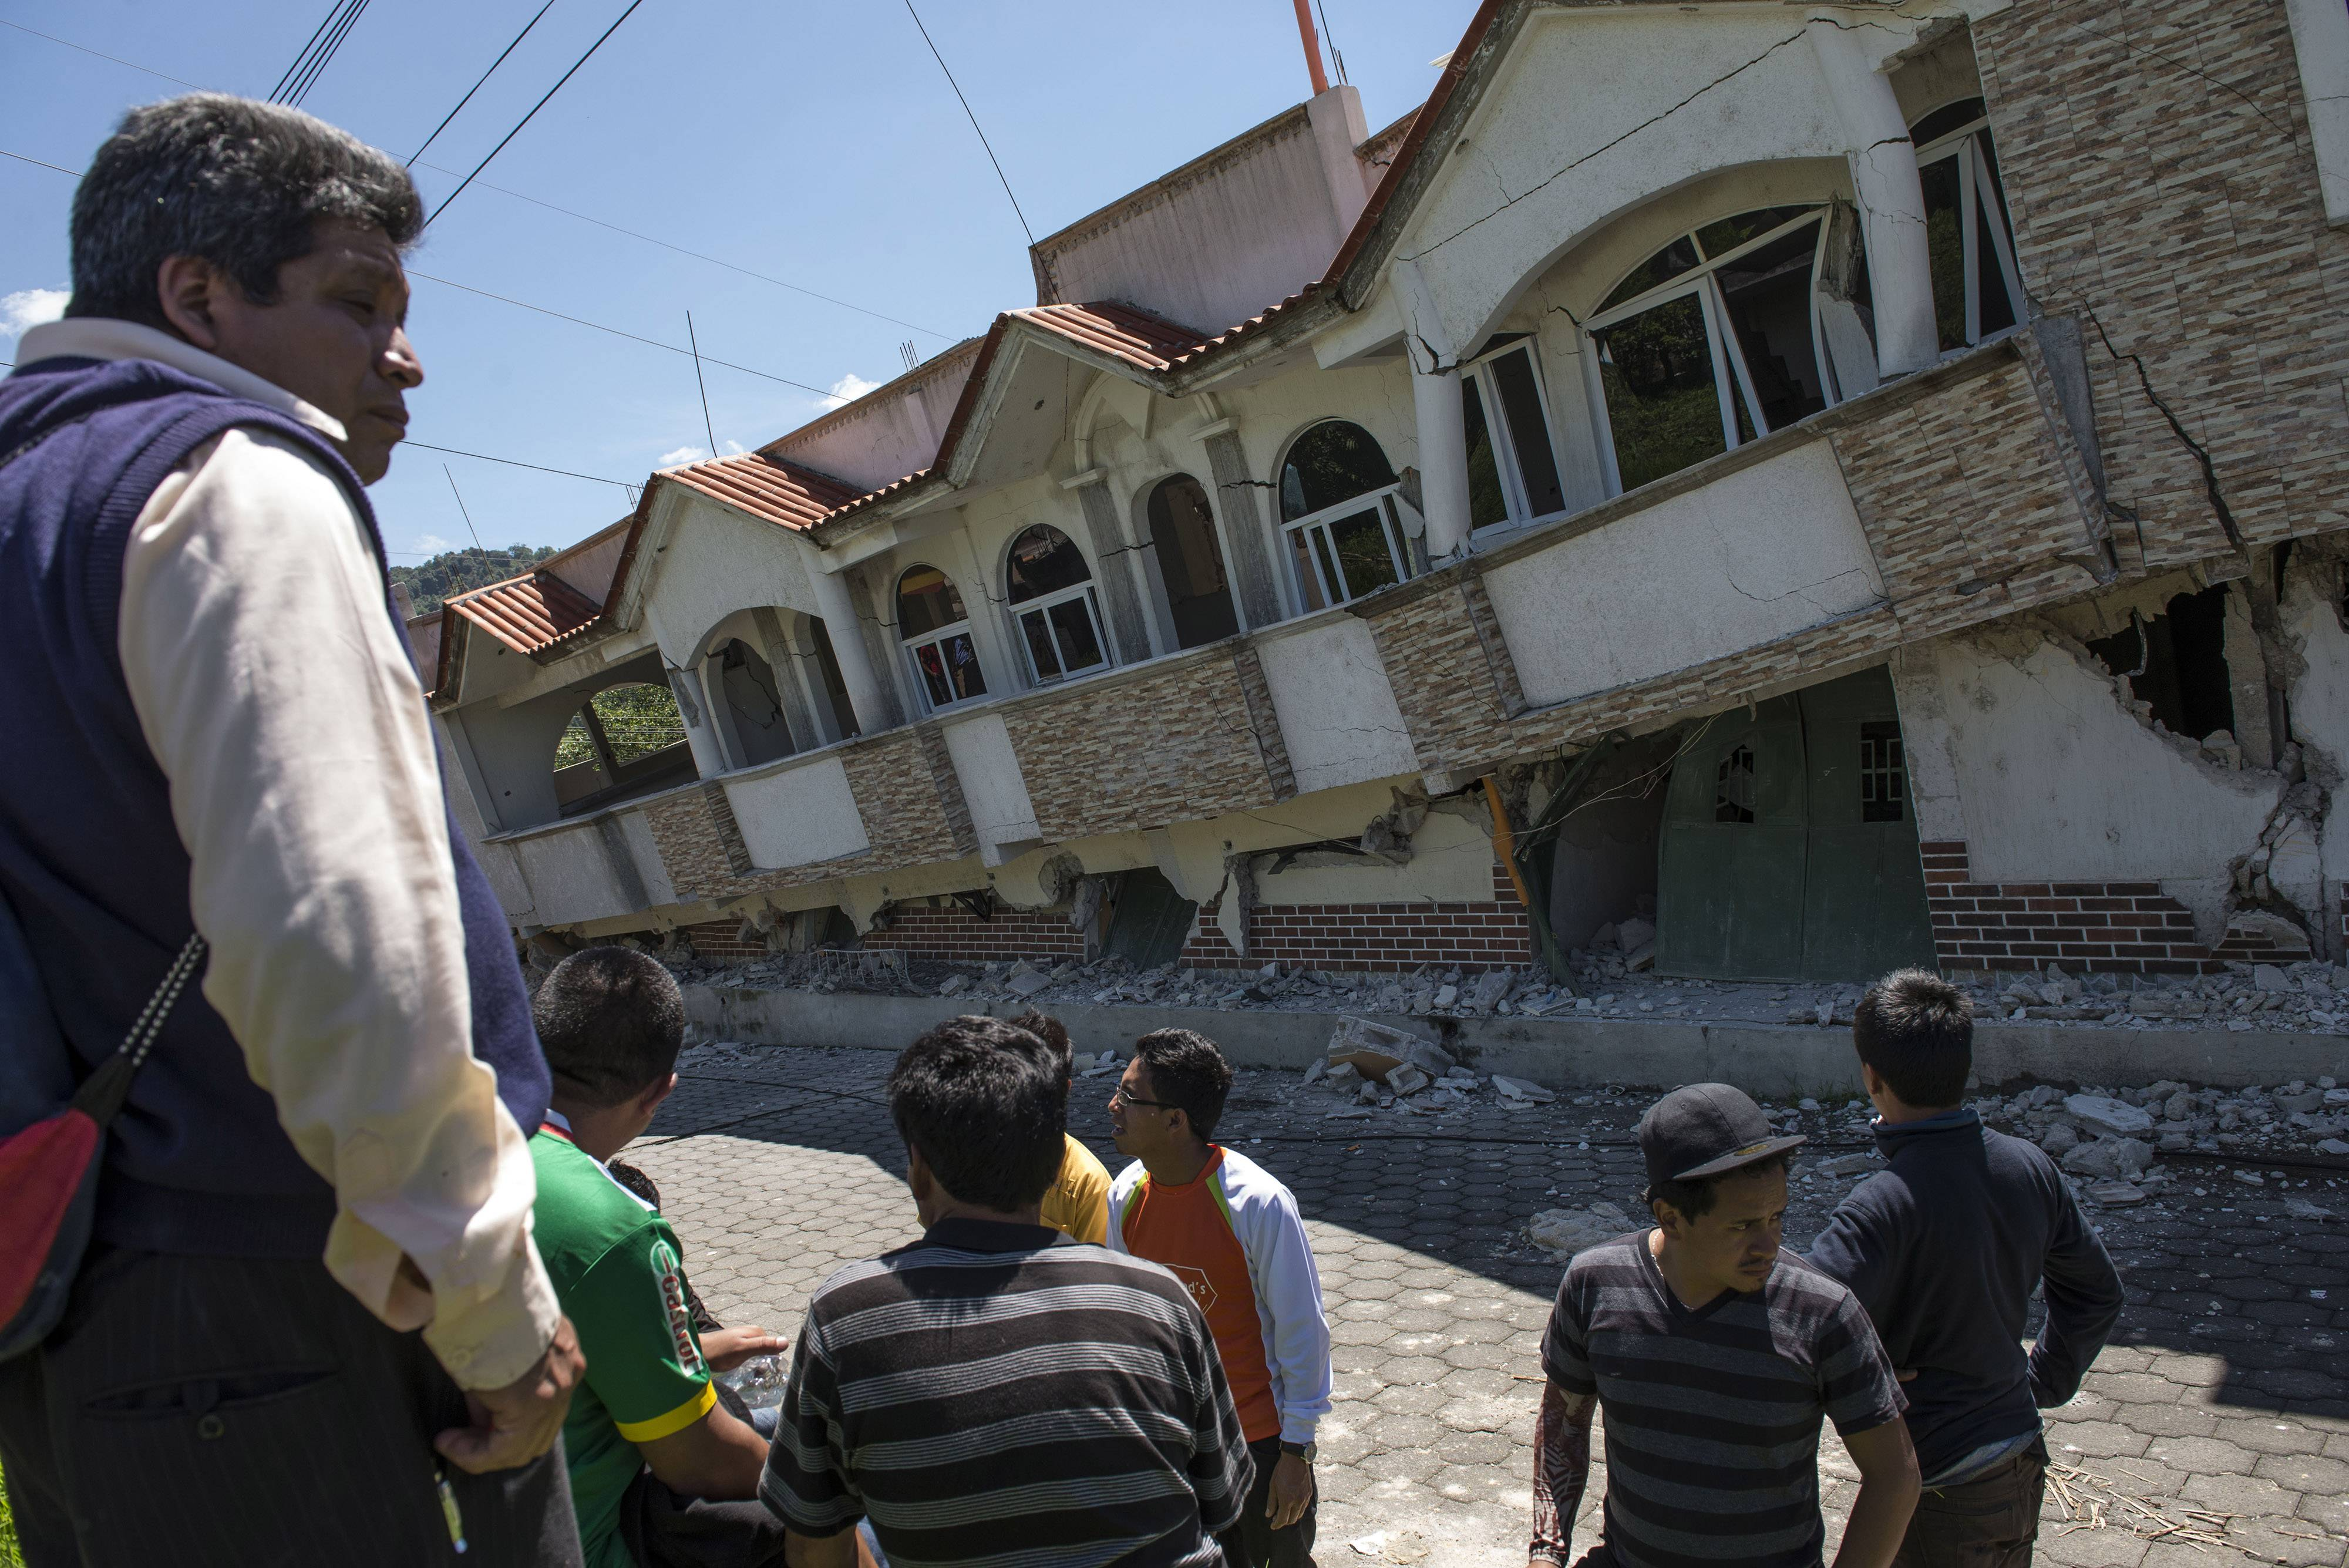 Neighbors gather outside homes that collapsed during an earthquake in San Pedro, Guatemala, Monday. A magnitude-6.9 earthquake on the Pacific Coast jolted a wide area of southern Mexico and Central America Monday.